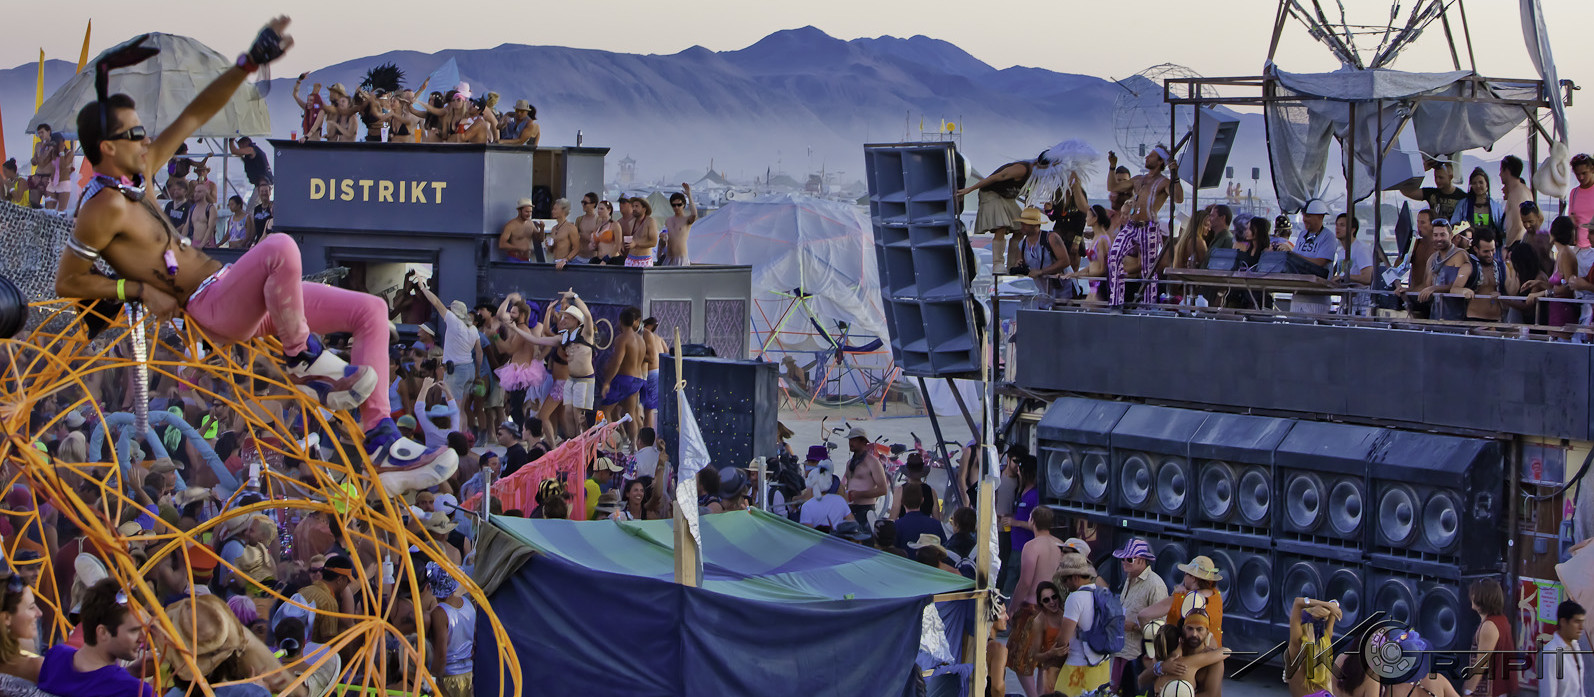 The Music of Burning Man Documentary